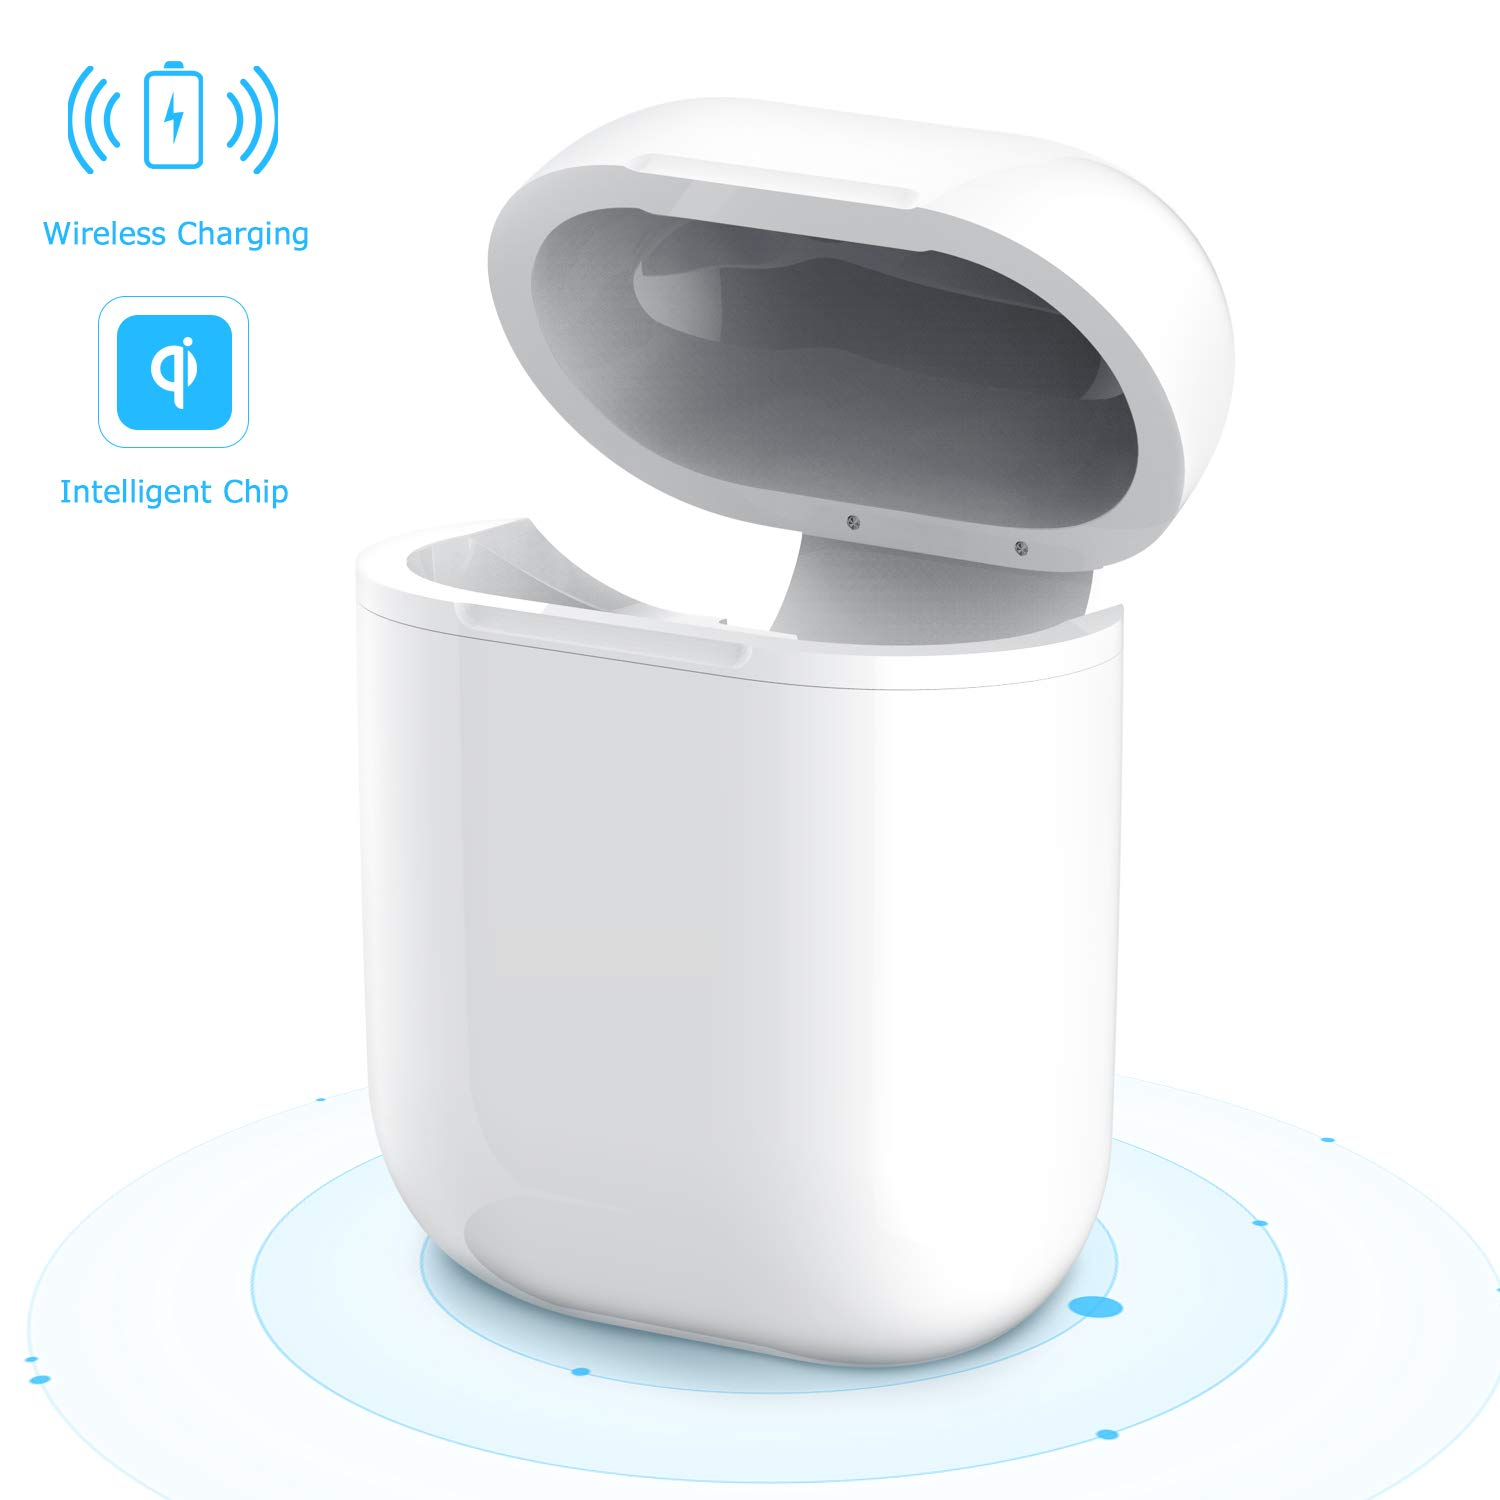 san francisco 91b16 eafa7 Airpods Wireless Charging Case, Maxcio Airpods Case Protector  Cover/Skin/Accessory Qi Standard for Apple Airpods Compatible with All QI  Wireless ...